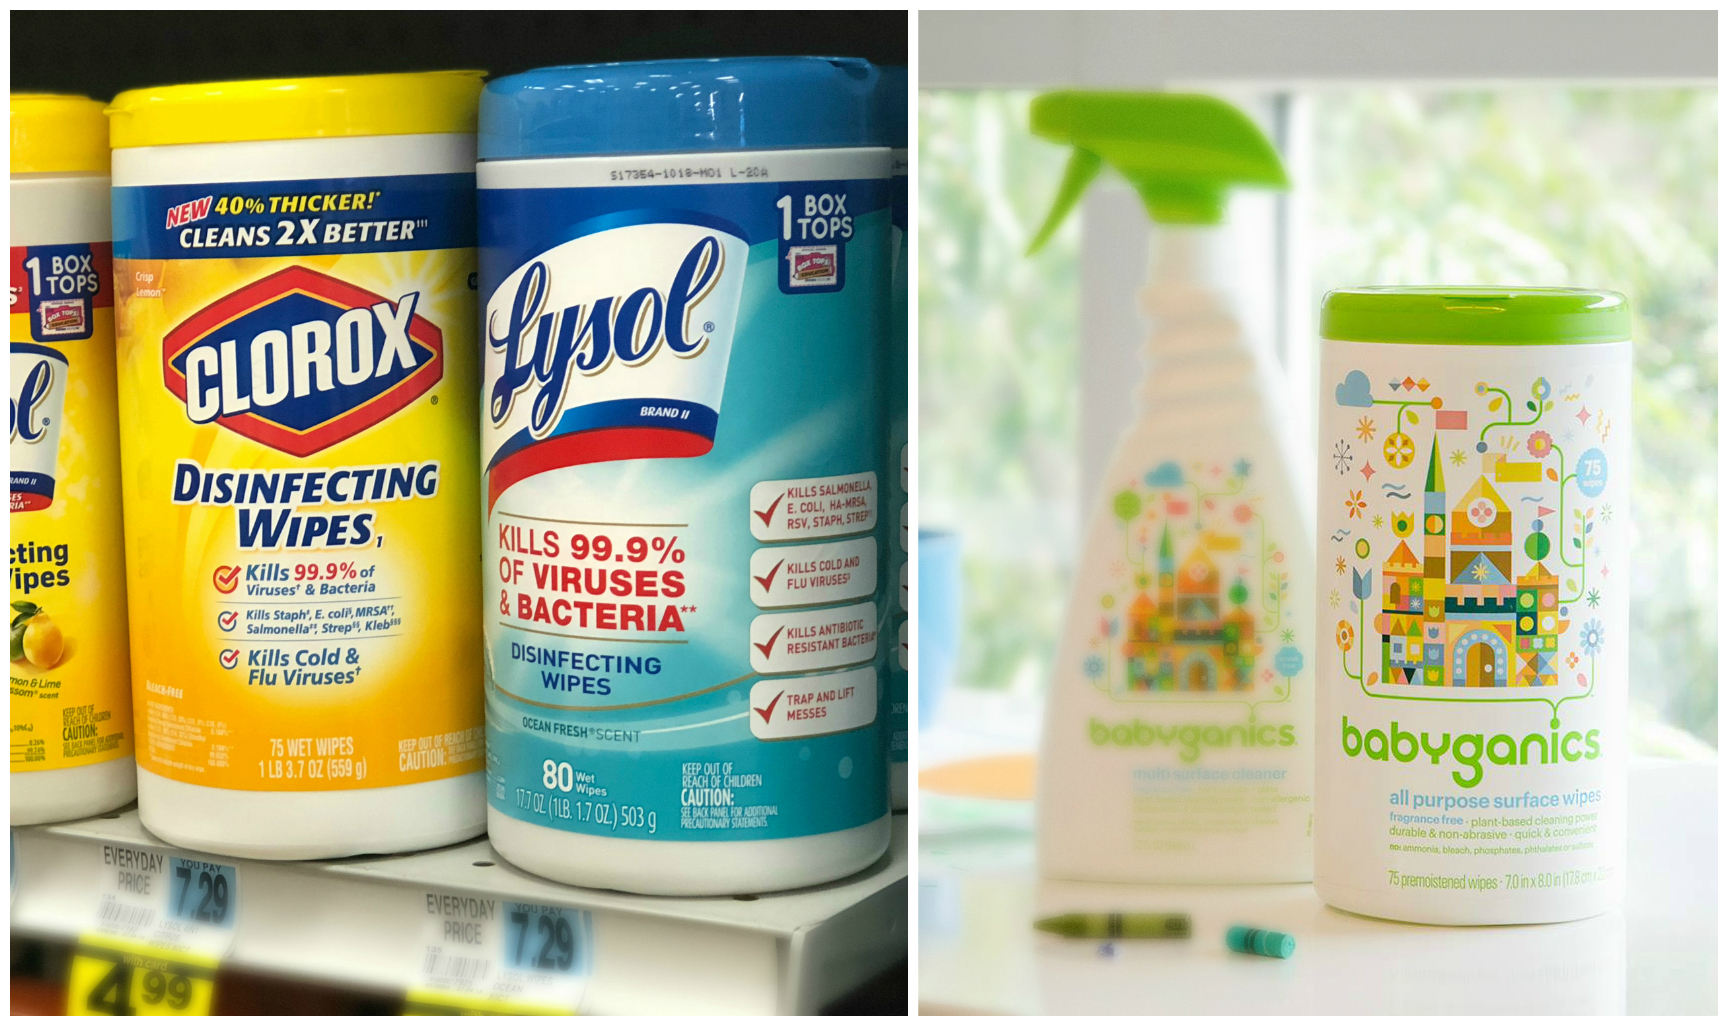 green natural eco-friendly cleaning products – Cleaning Wipes comparison - Lysol versus babyganics